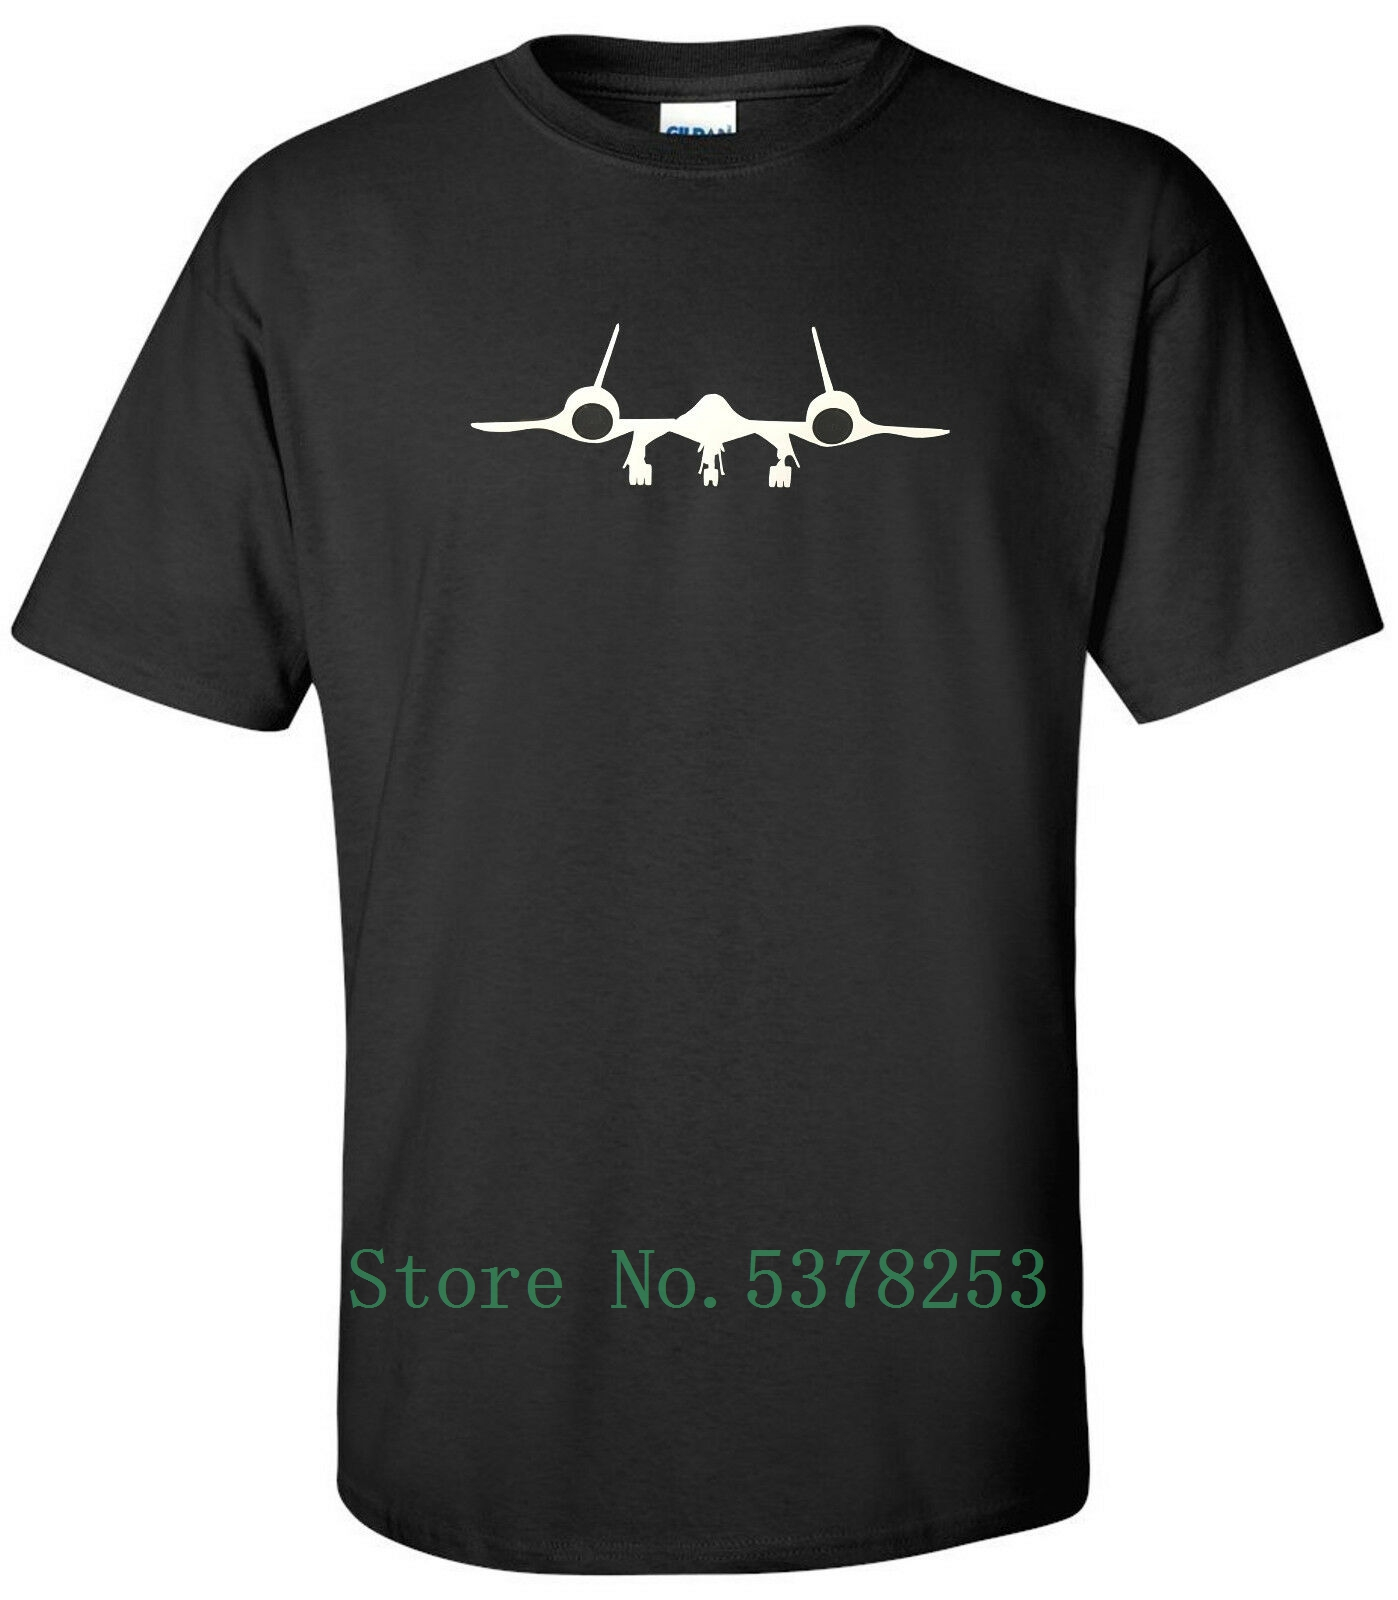 Sr-71 Blackbird T-<font><b>Shirt</b></font> Sr71 Air Force <font><b>Usaf</b></font> Veteran Patriotic <font><b>Shirt</b></font> Custom Gift 100% Cotton Mens Tshirt Unisex Hipster image